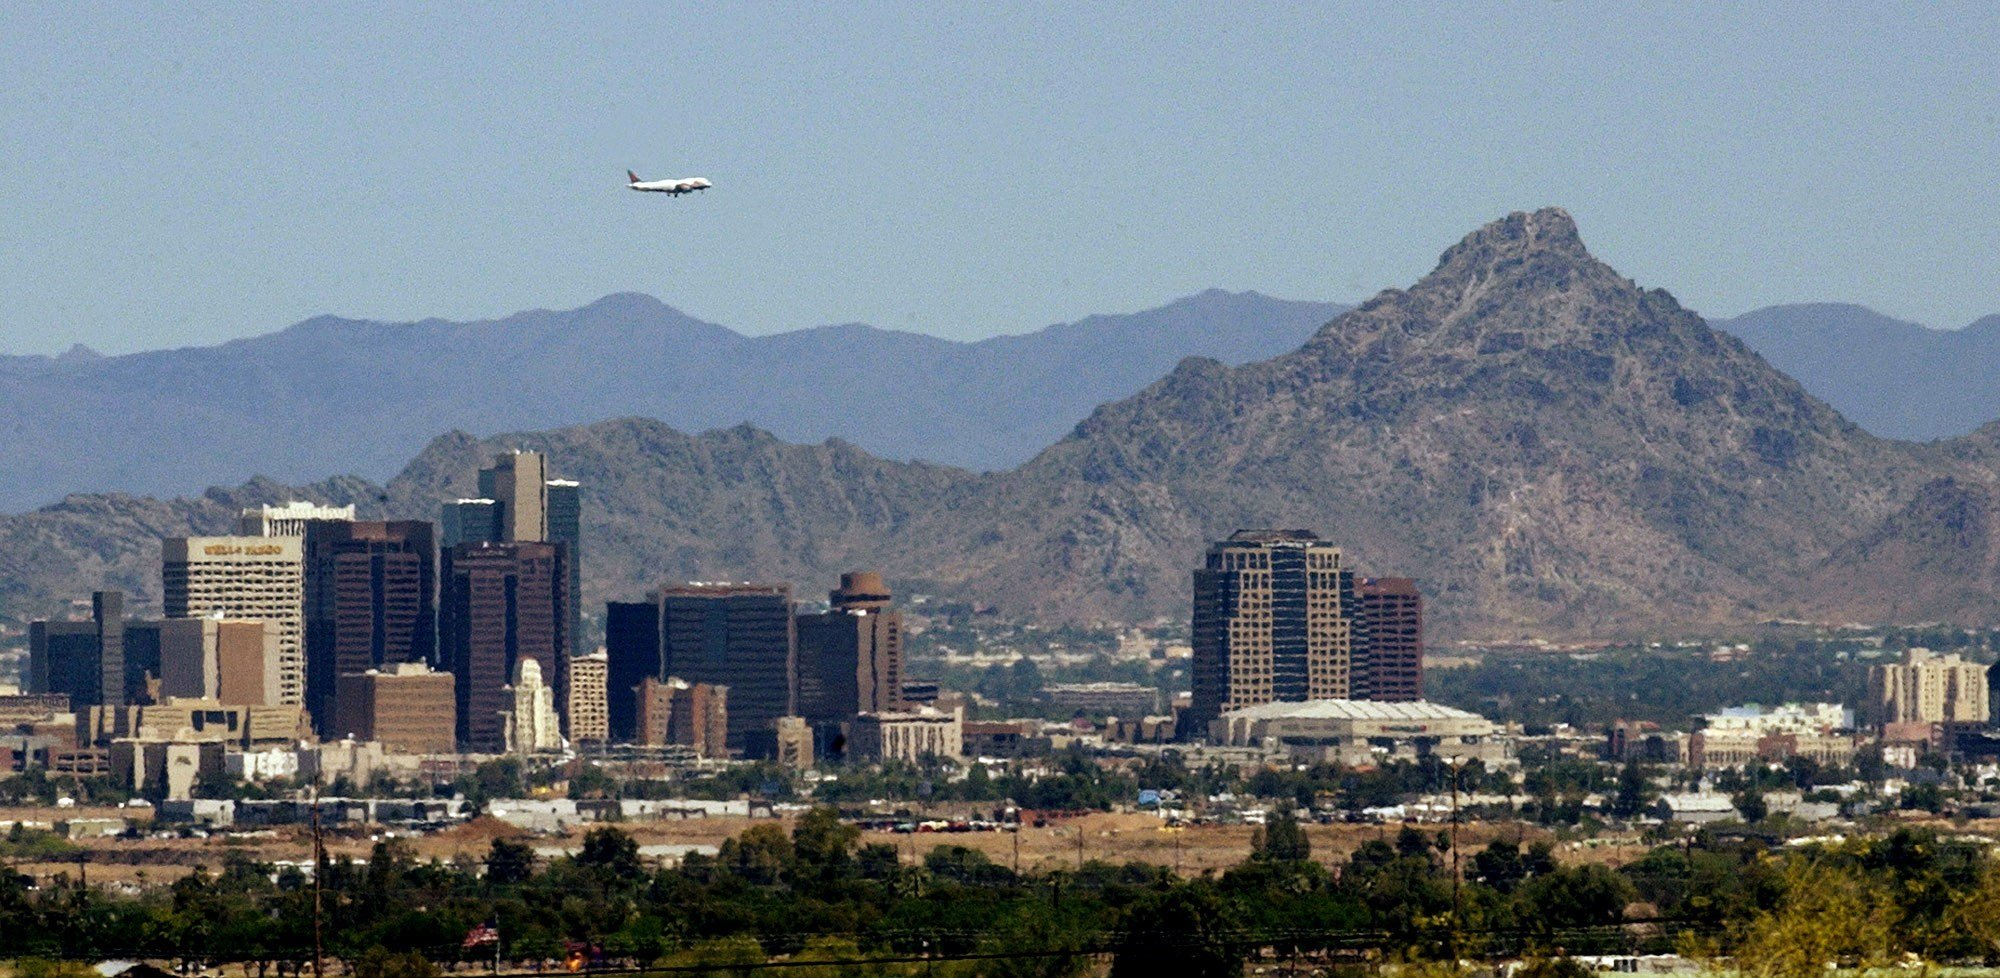 Rain is pretty much non-existent in Phoenix in May and June as we patiently await the arrival of the monsoon. (Source: AP File Photo)